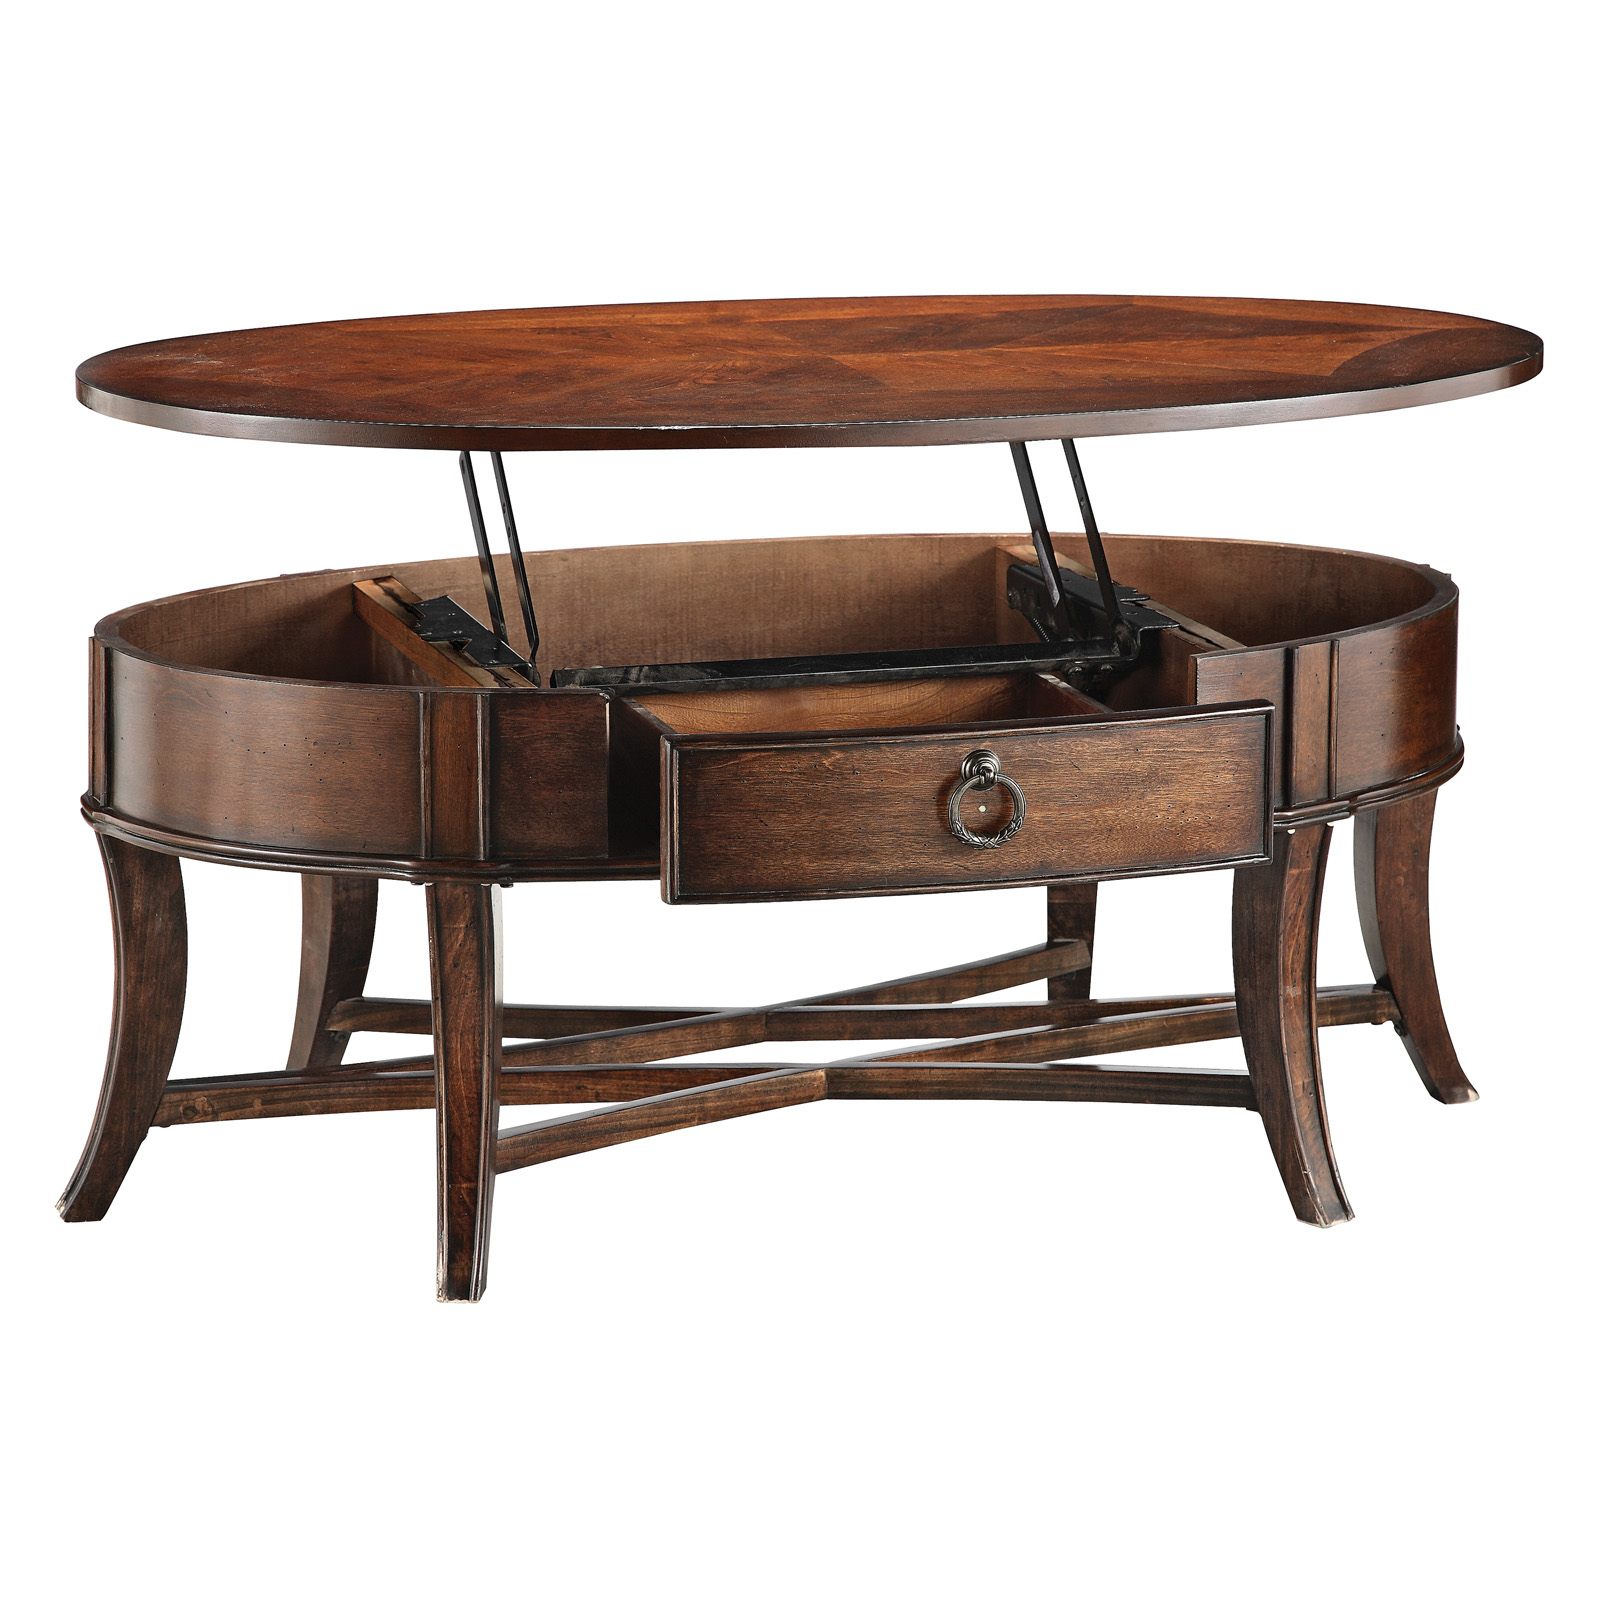 Captivating Oval Coffee Table With Storage